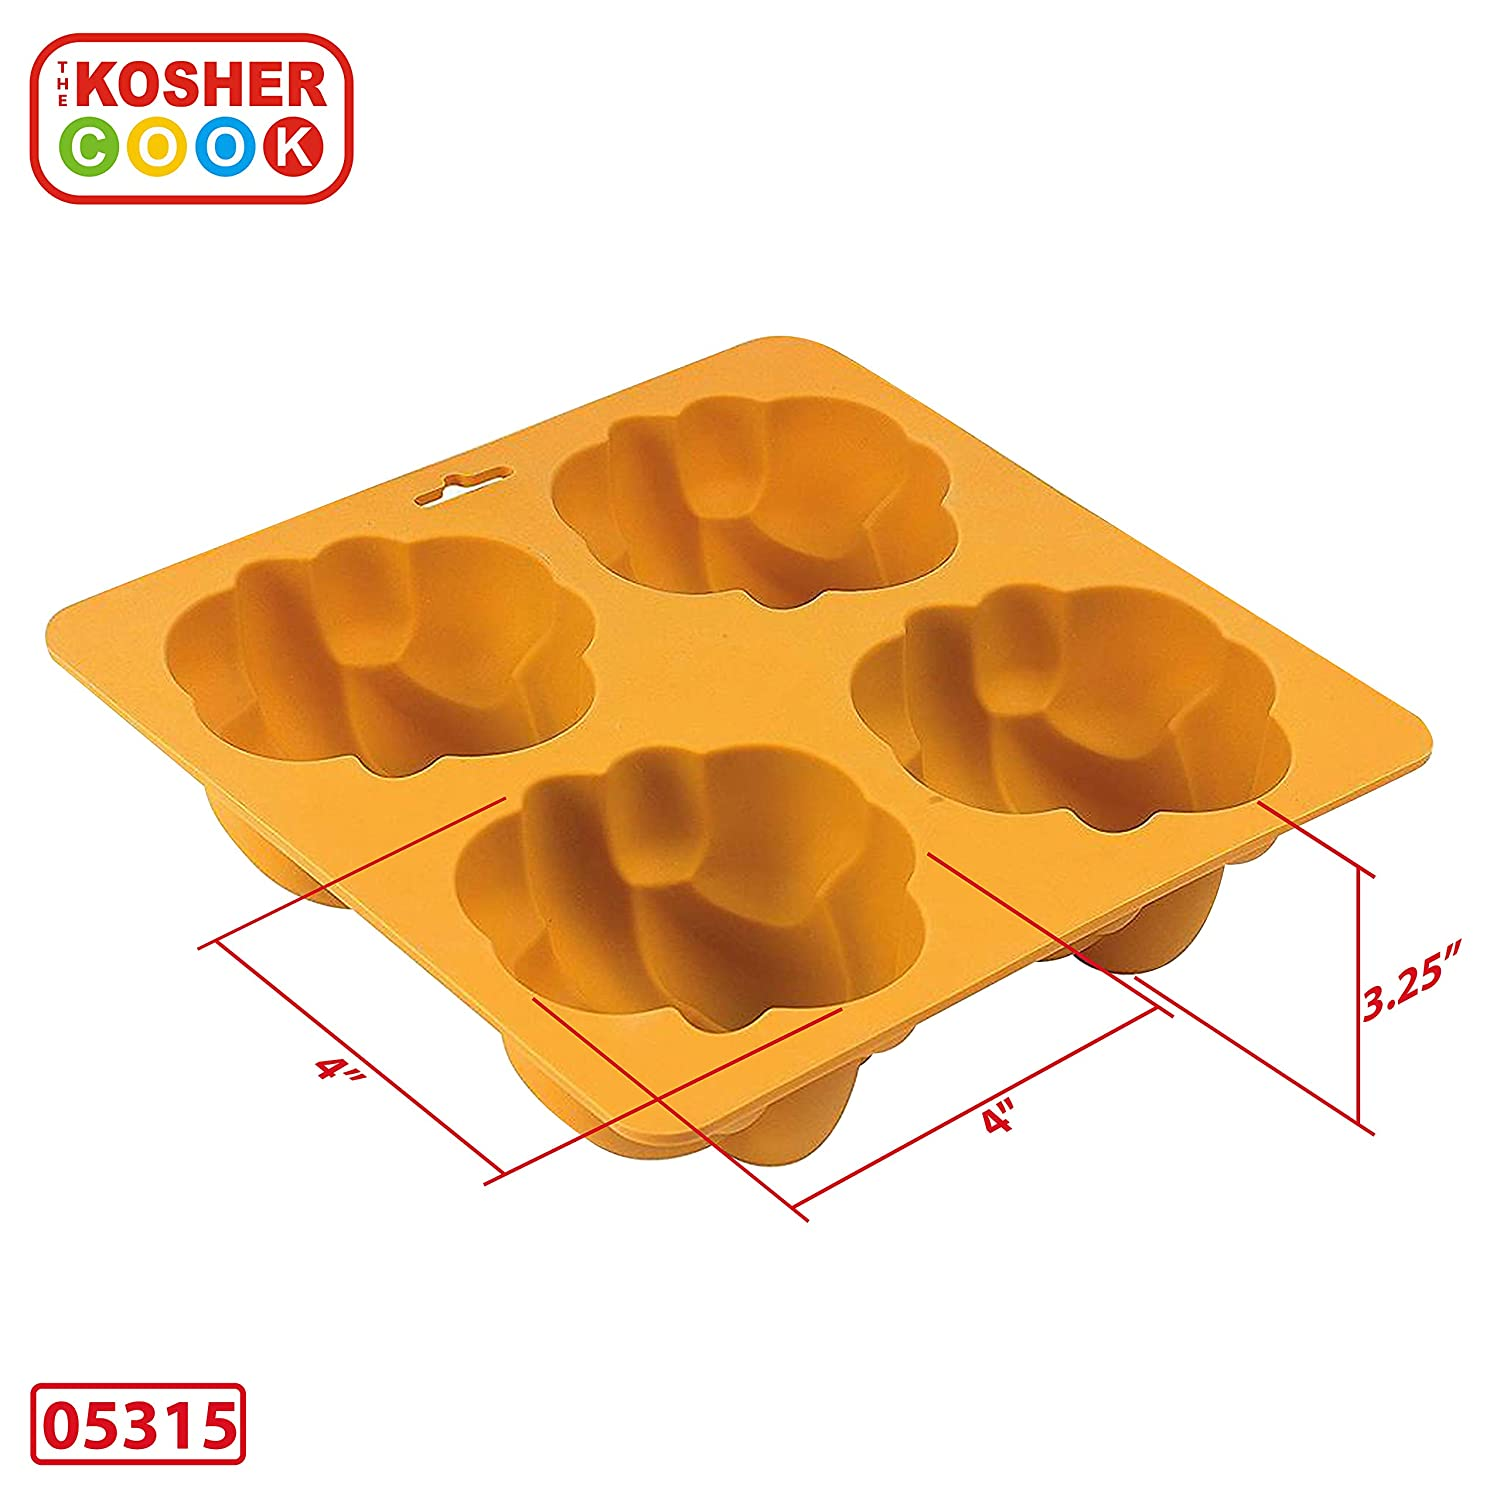 The Kosher Cook KCBW0164 Deluxe Royal Chalets//Rolls Silicone Baking Pan